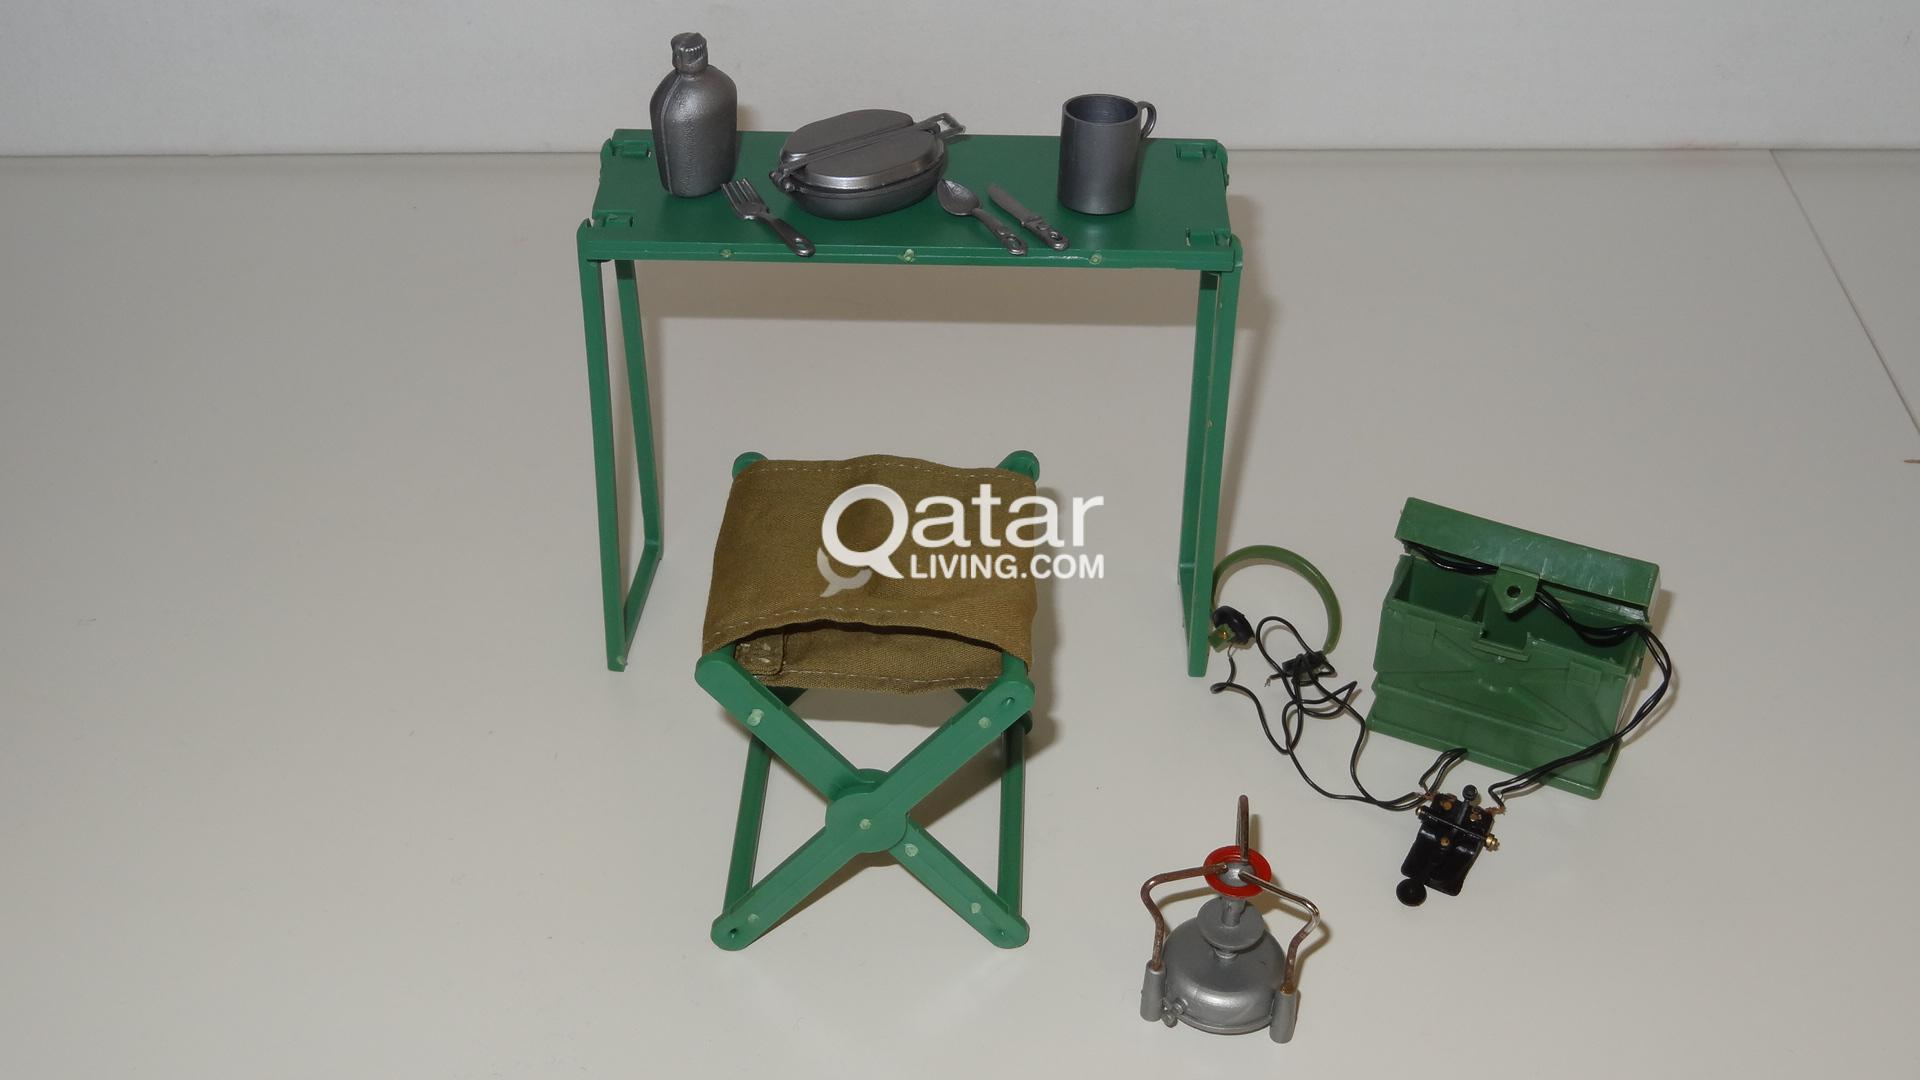 sedan chair rental walmart mickey mouse table and chairs action man palitoy - vintage camping gear 1970's | qatar living